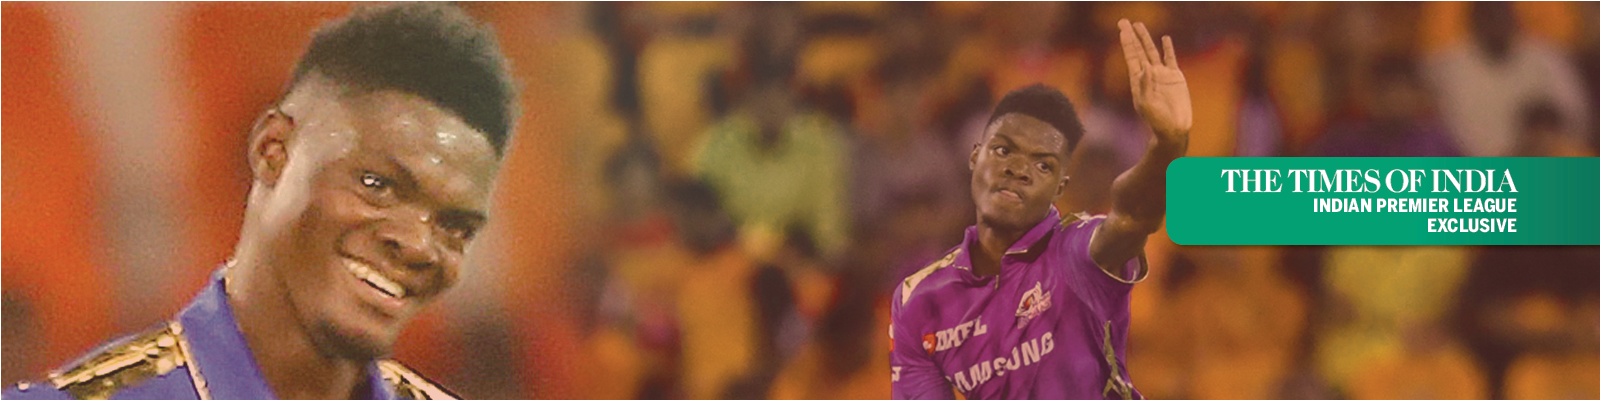 Bowler with best bowling figures in an IPL match